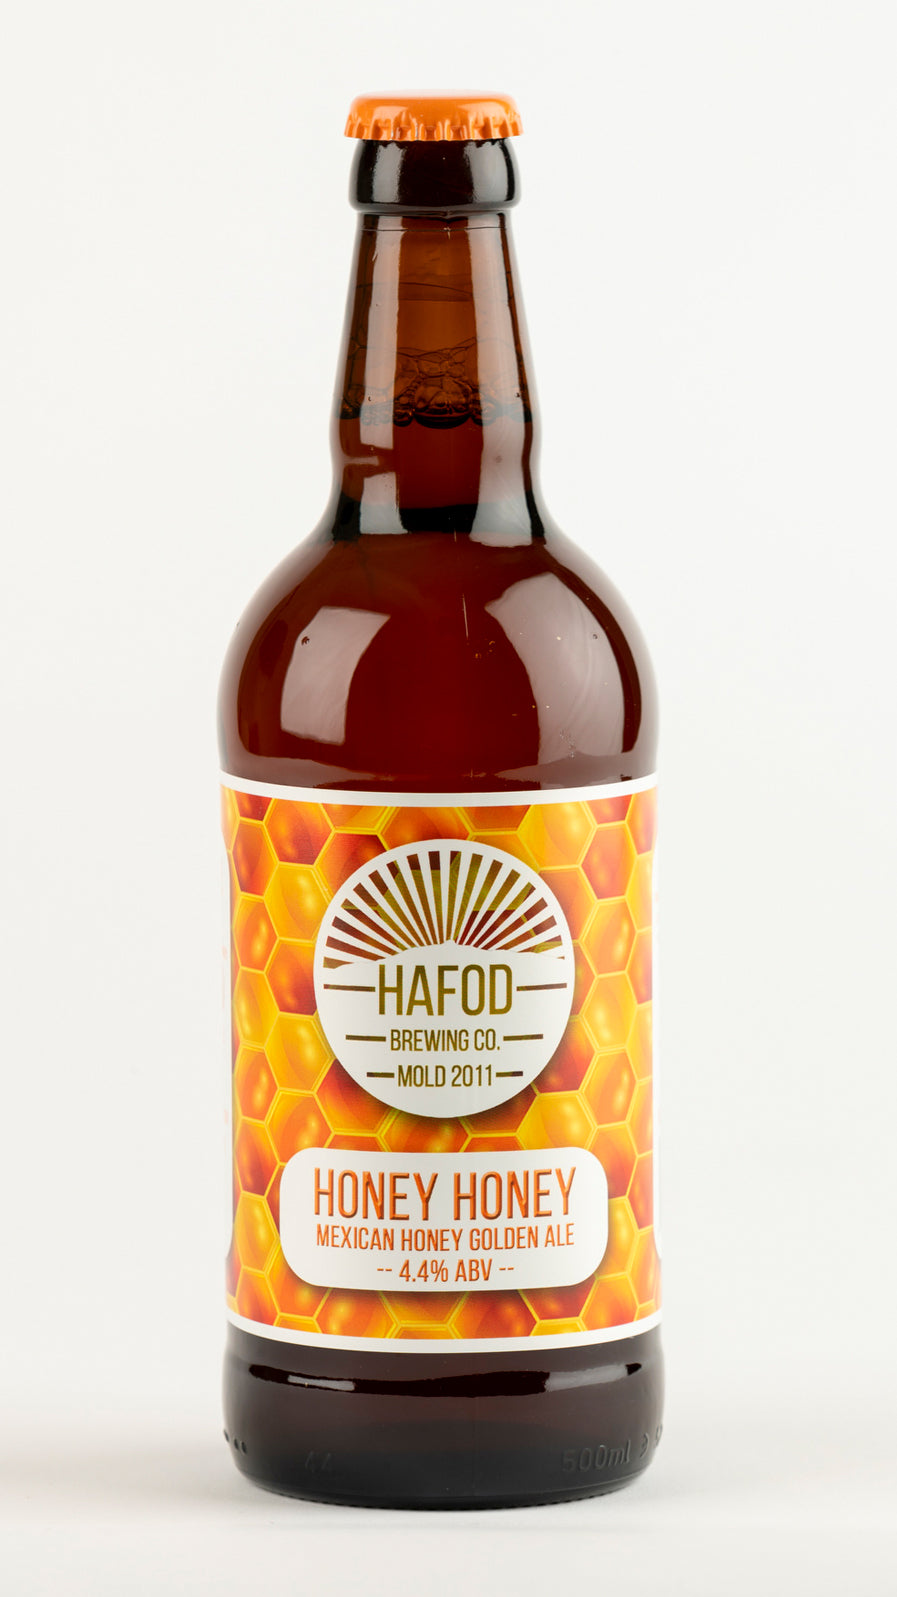 Honey Honey - Pale Honey Ale